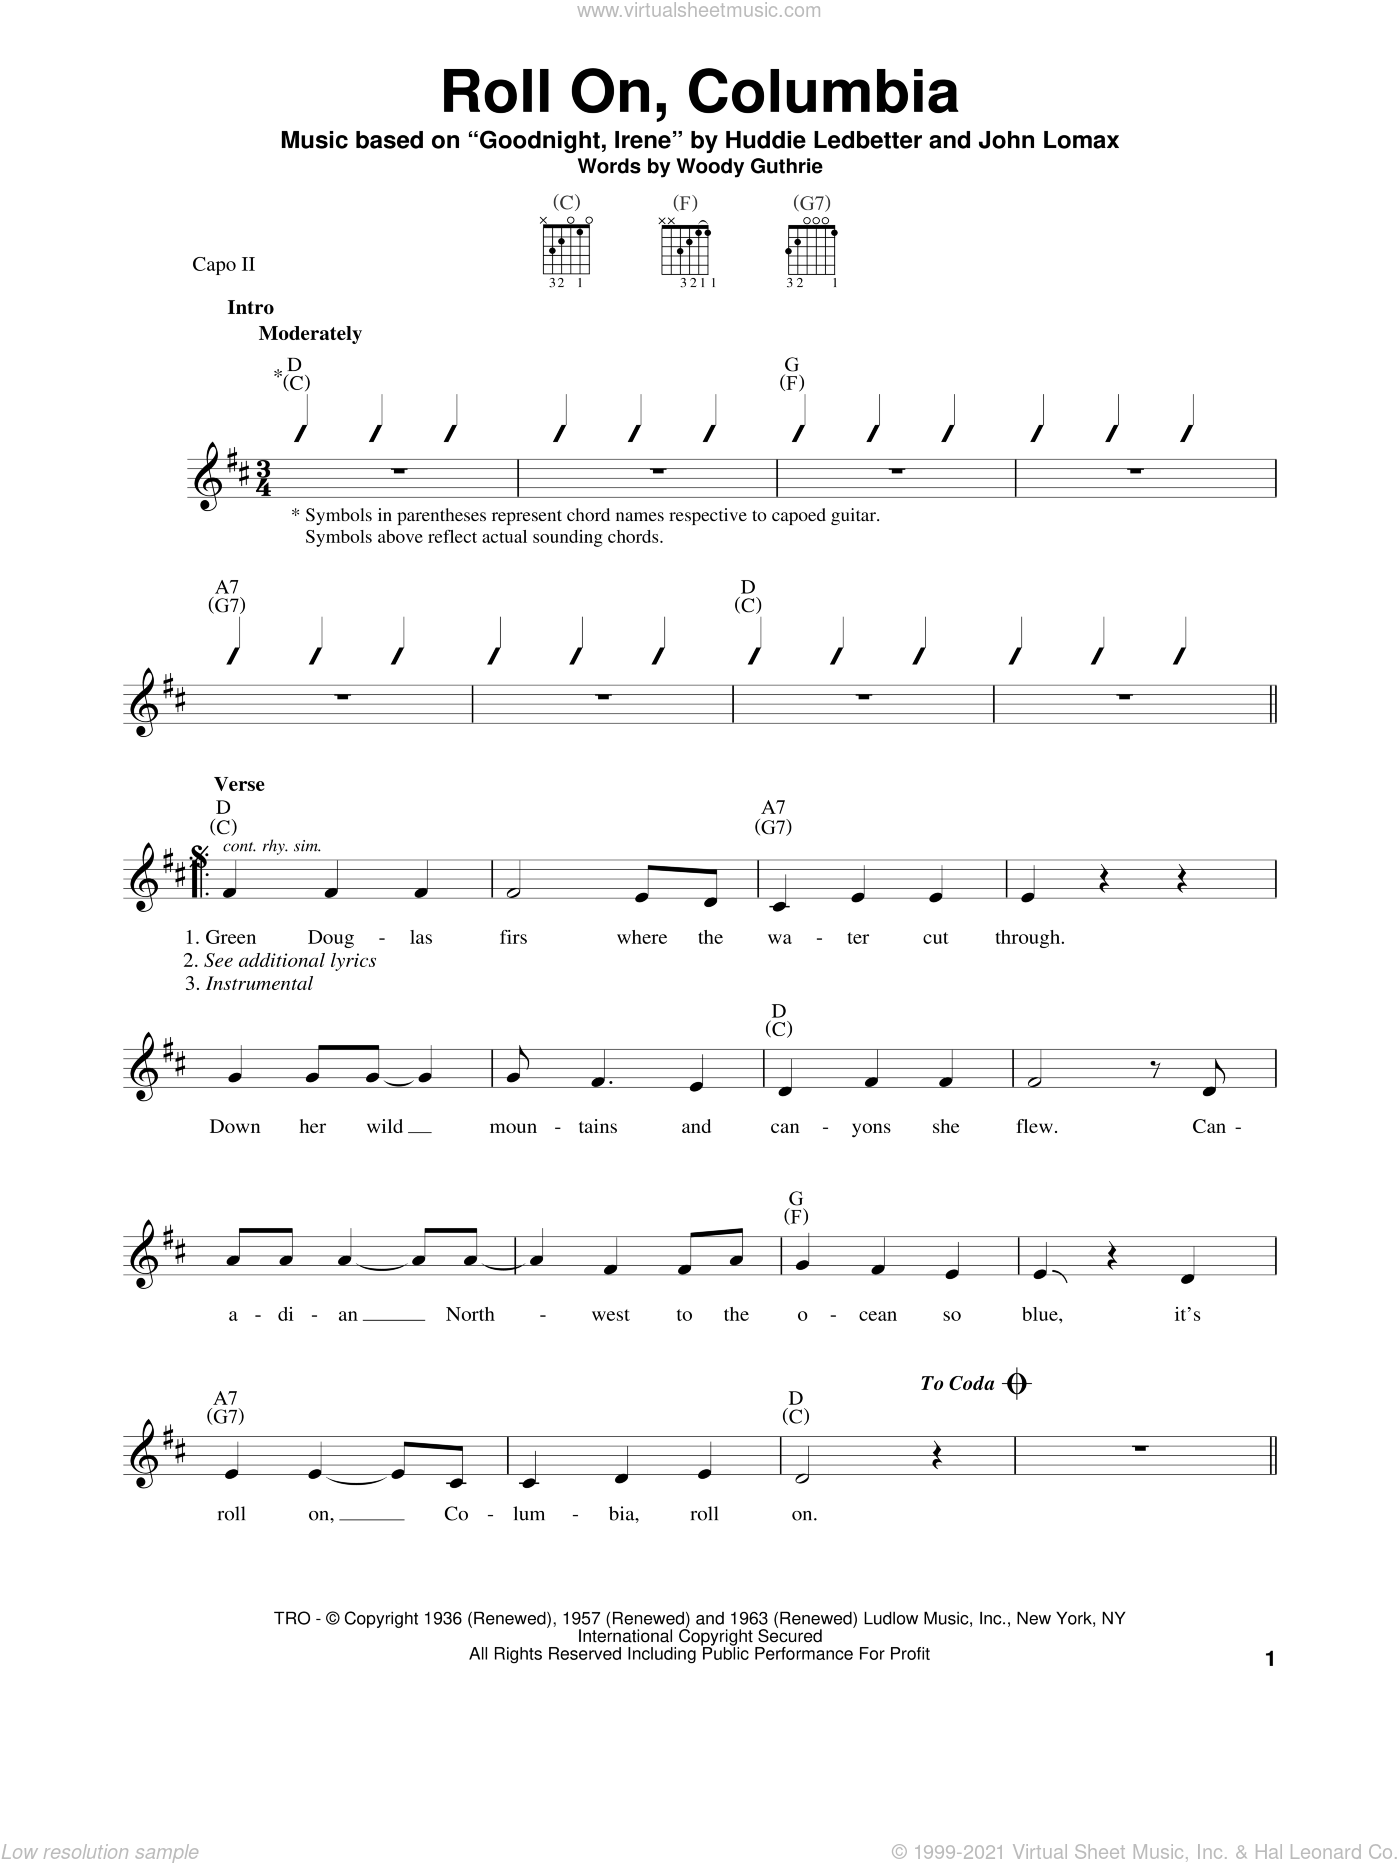 Roll On, Columbia sheet music for guitar solo (chords) by Woody Guthrie, Lead Belly, Huddie Ledbetter and John A. Lomax, easy guitar (chords)